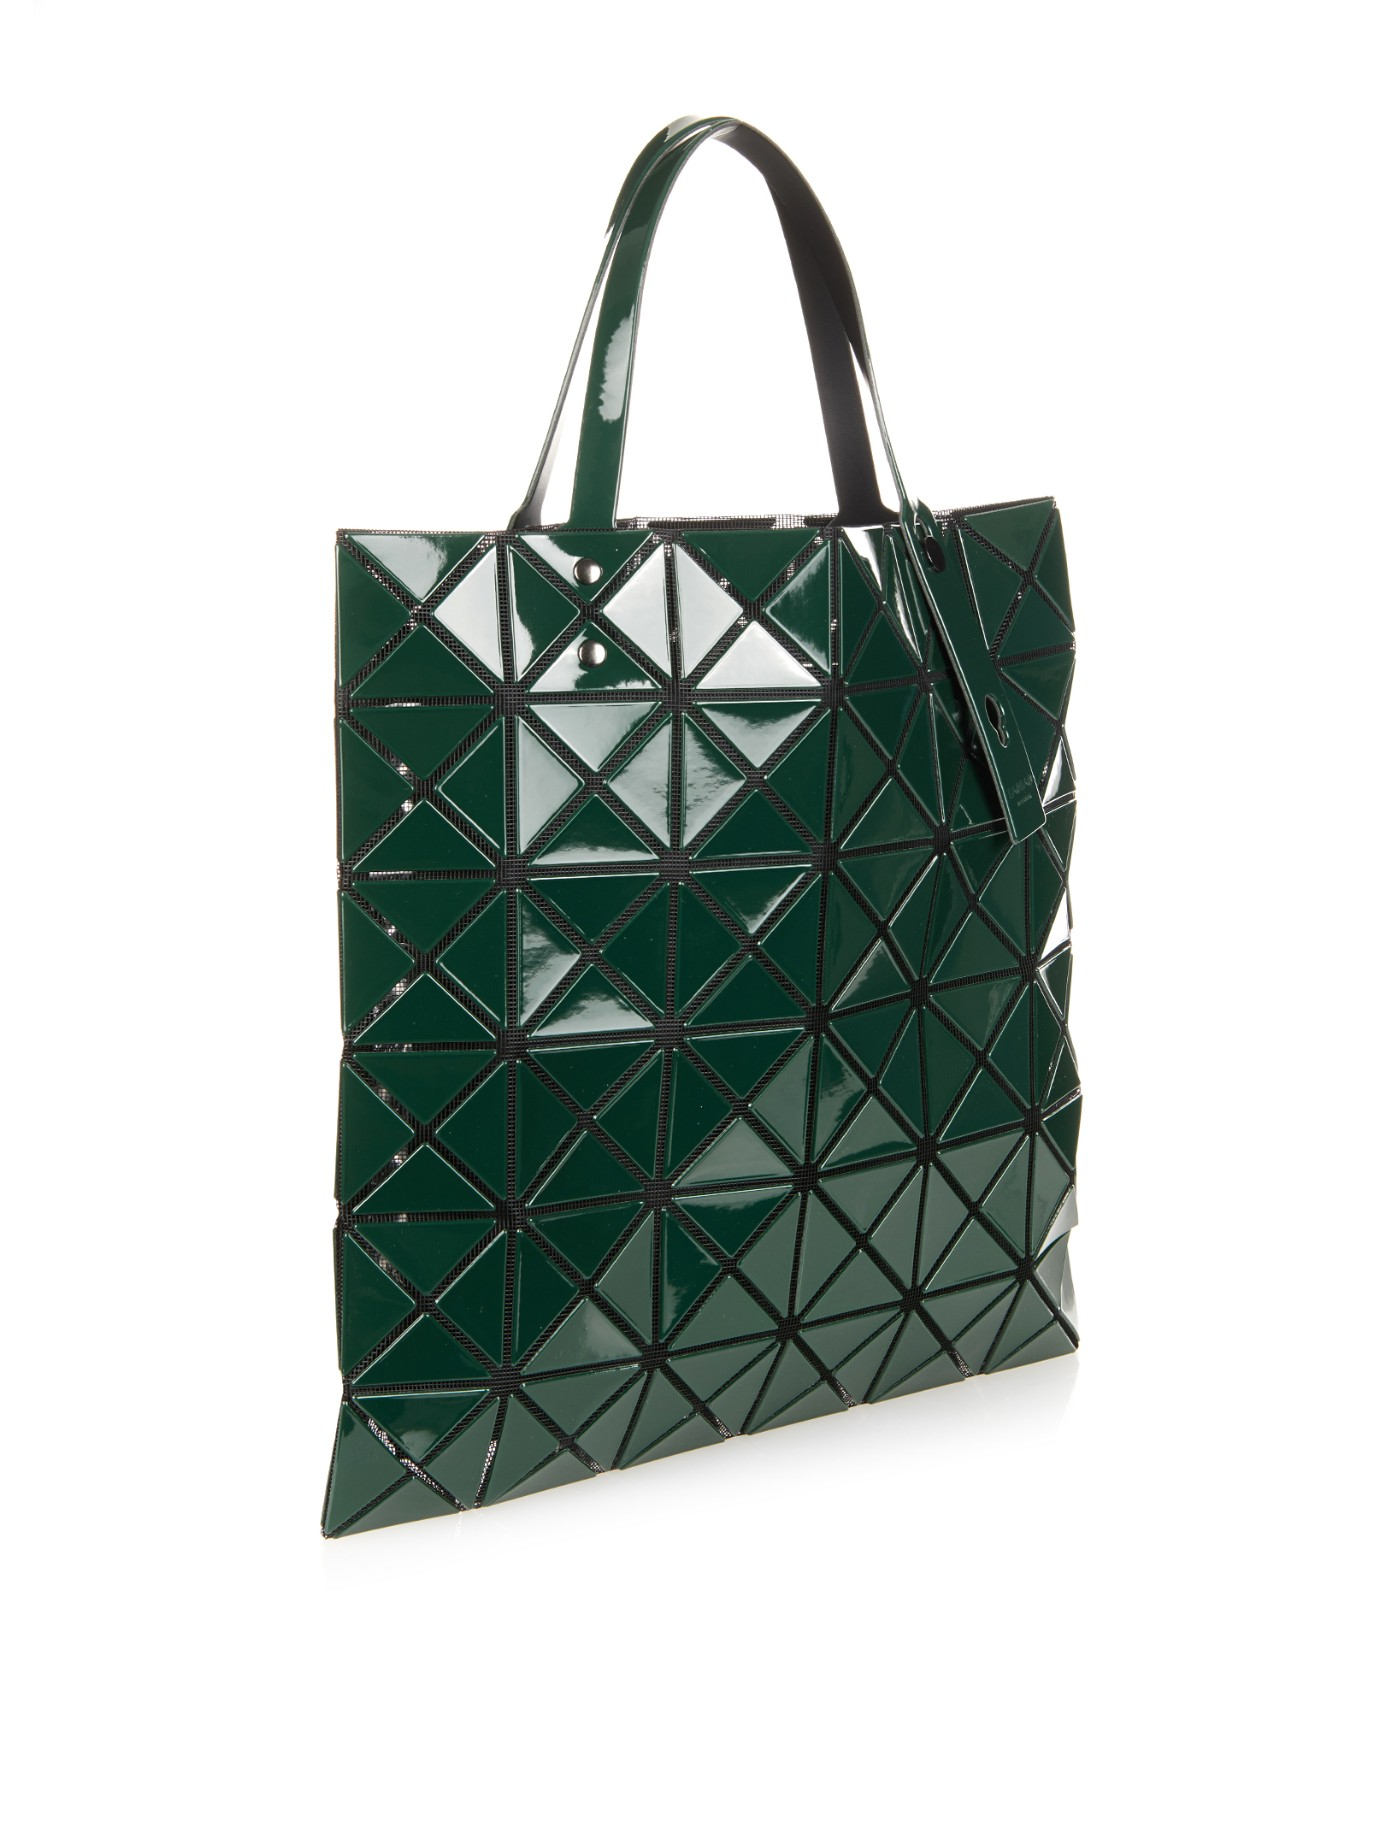 Bao Bao Issey Miyake Lucent Basic Tote In Green Lyst